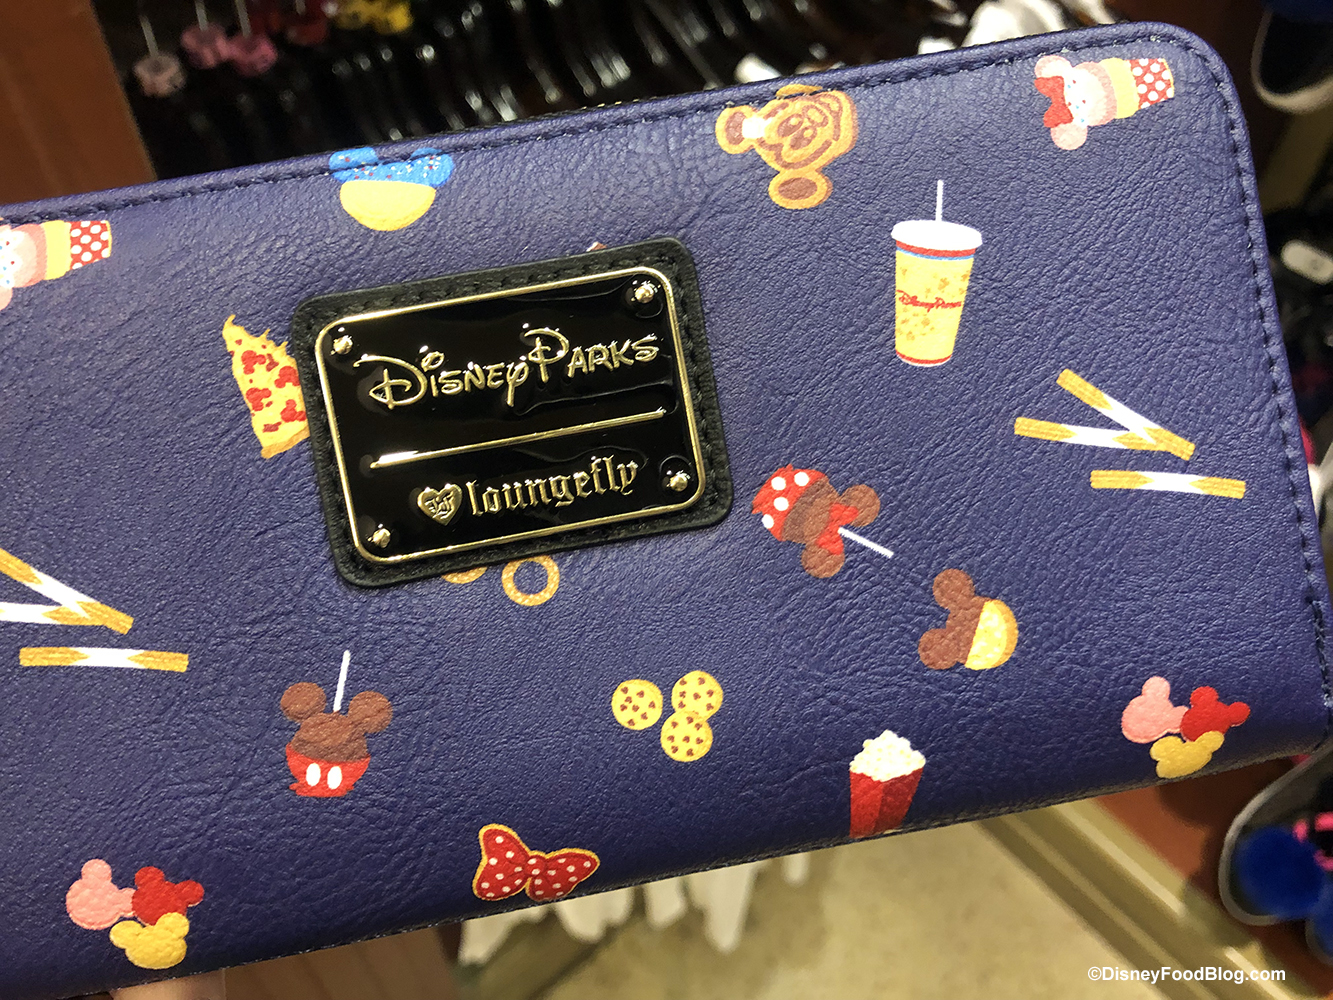 8d5f6ad3caf FINALLY! Loungefly Line of Disney Snacks Bags and Wallets!!